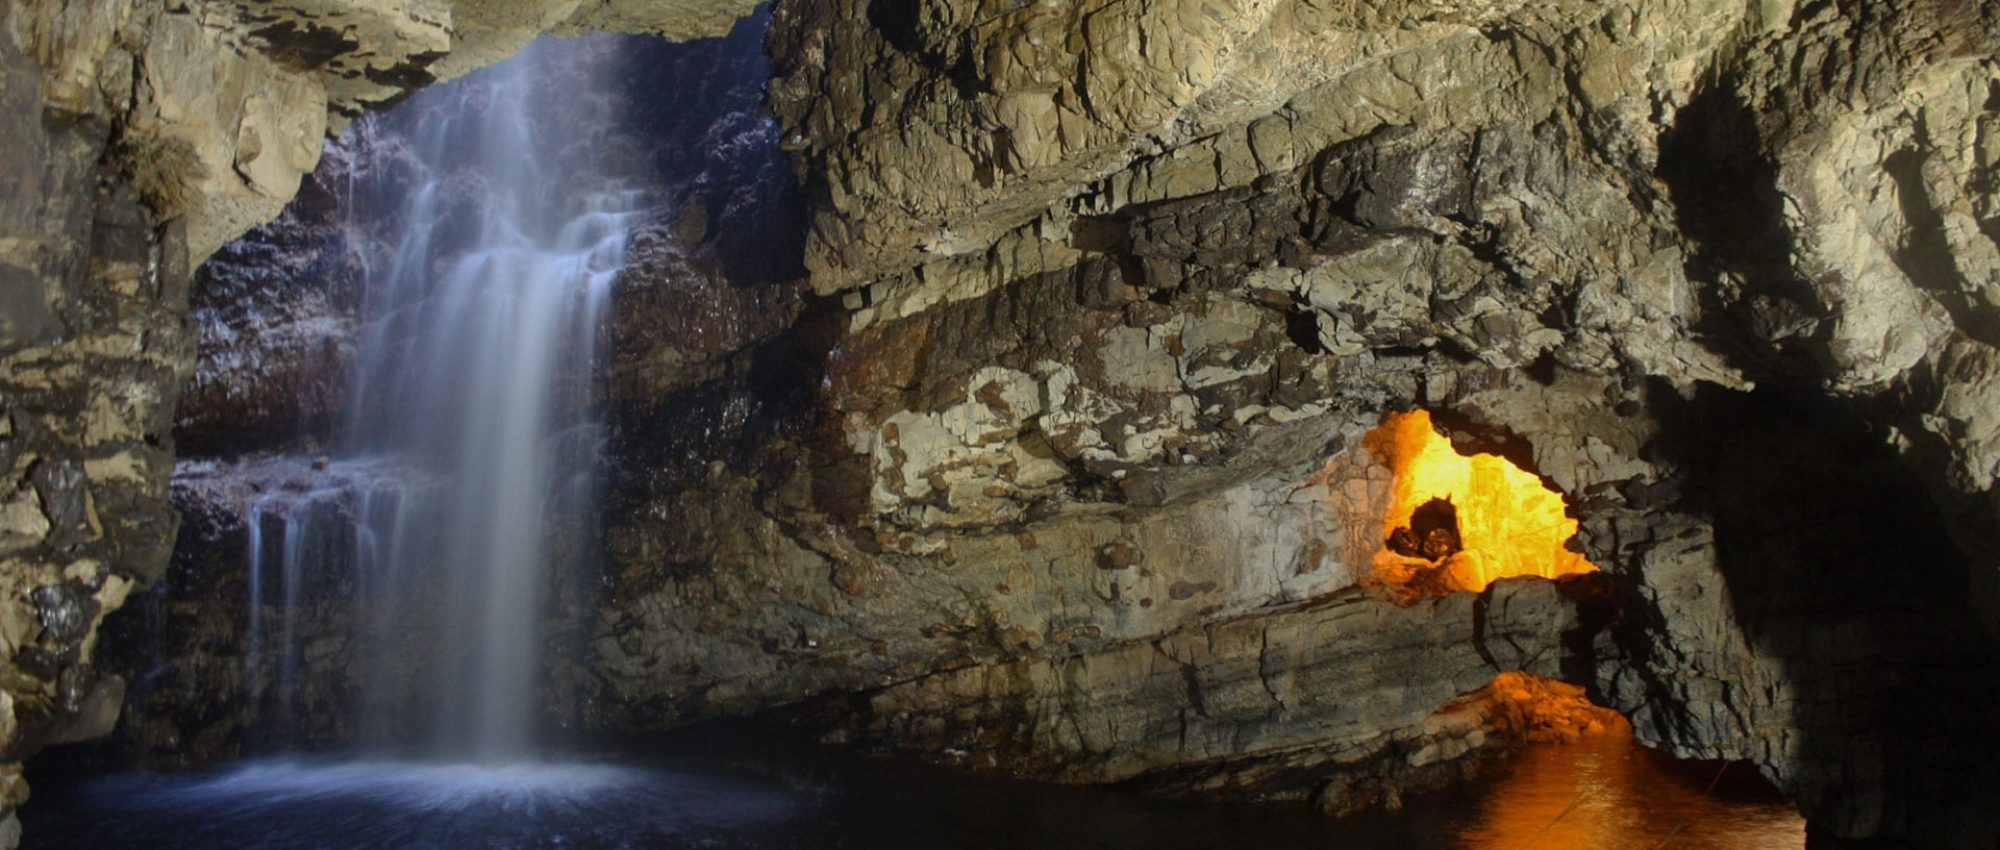 cave with waterfall